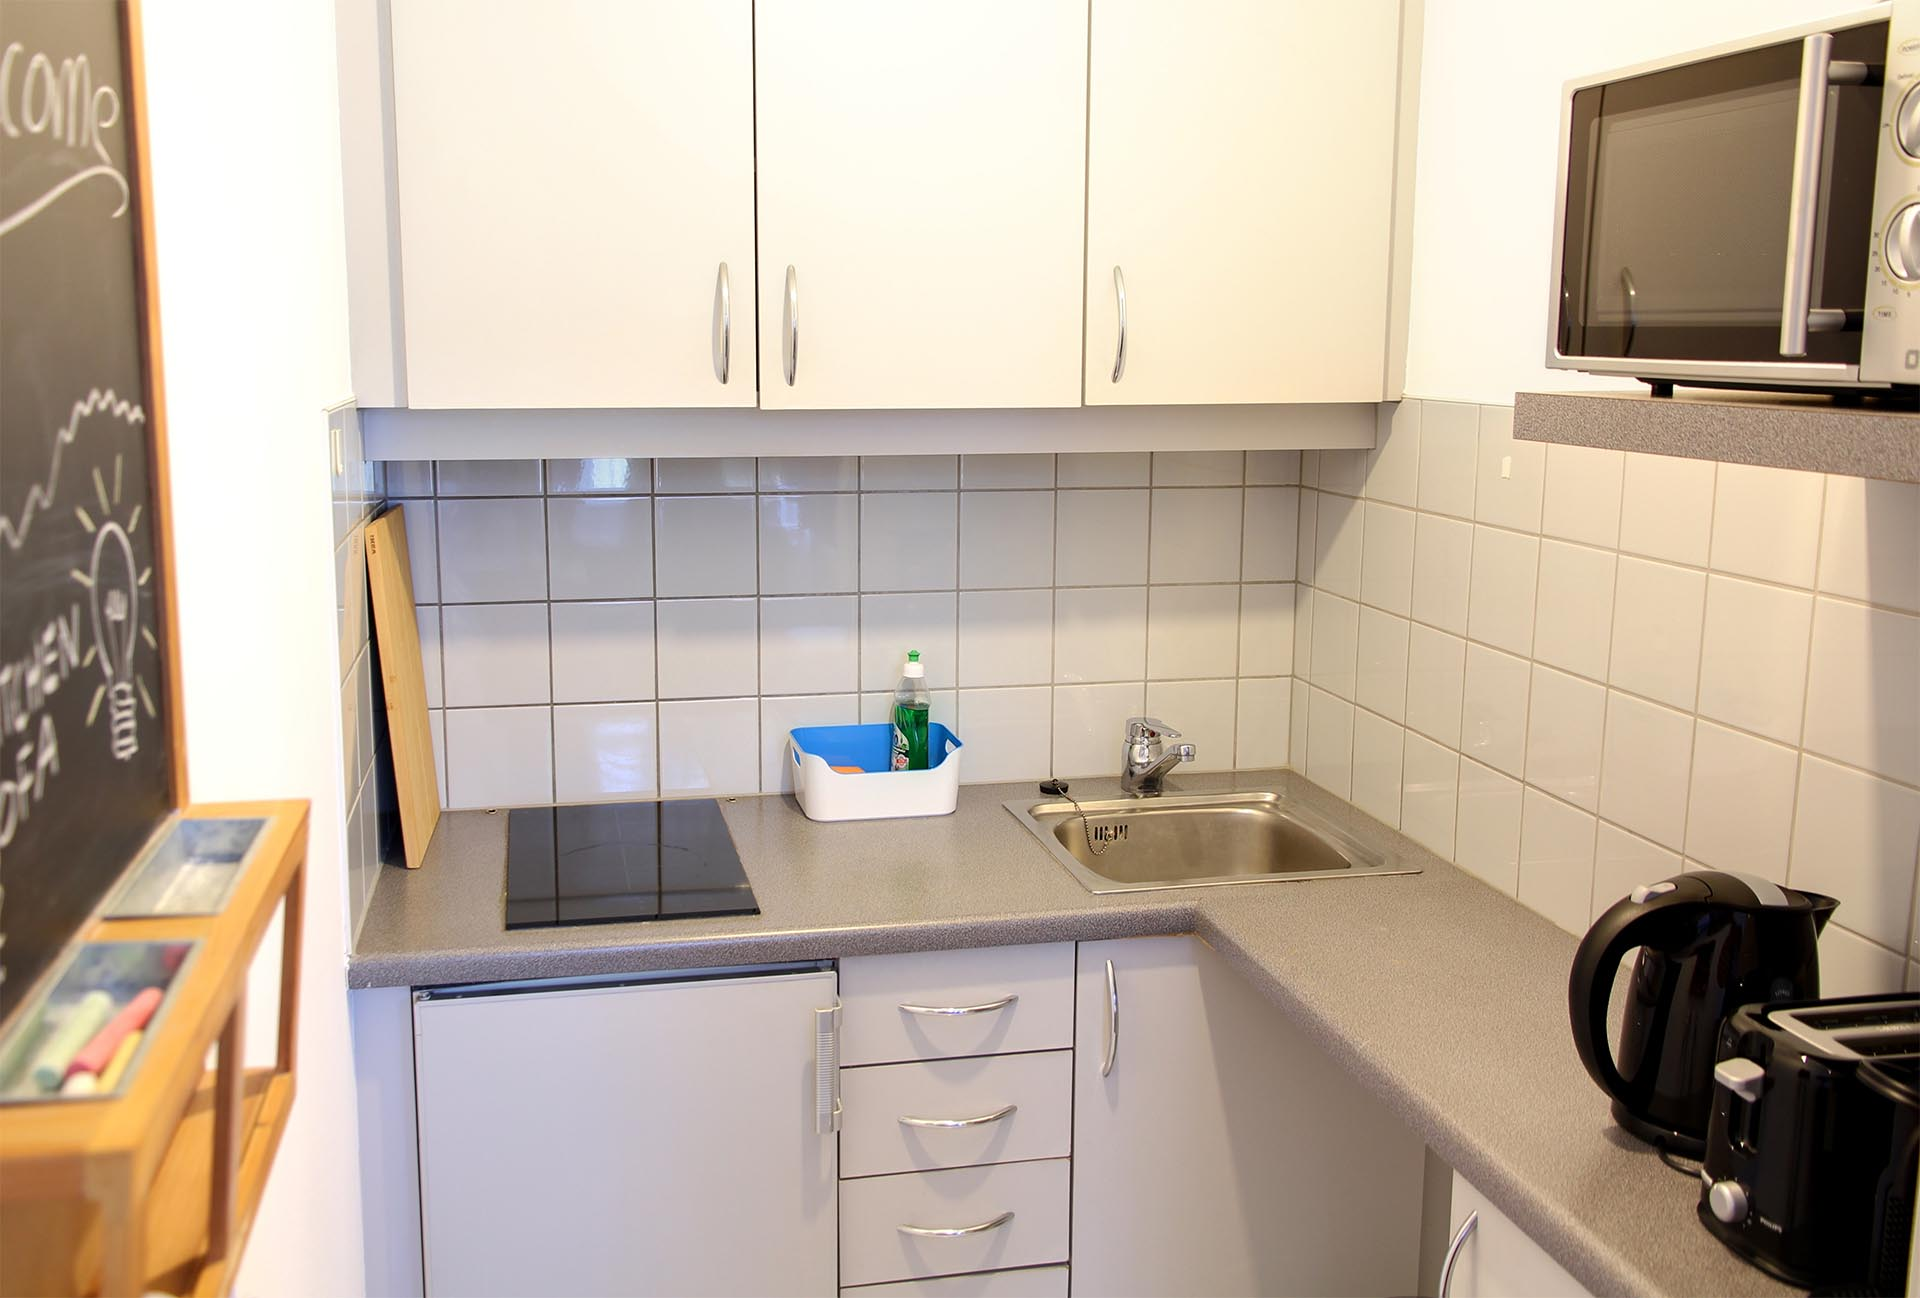 74living_serviced_business_apartments_apartment_16_ap16_hp_5 ·  74living_serviced_business_apartments_apartment_16_ap16_hp_6